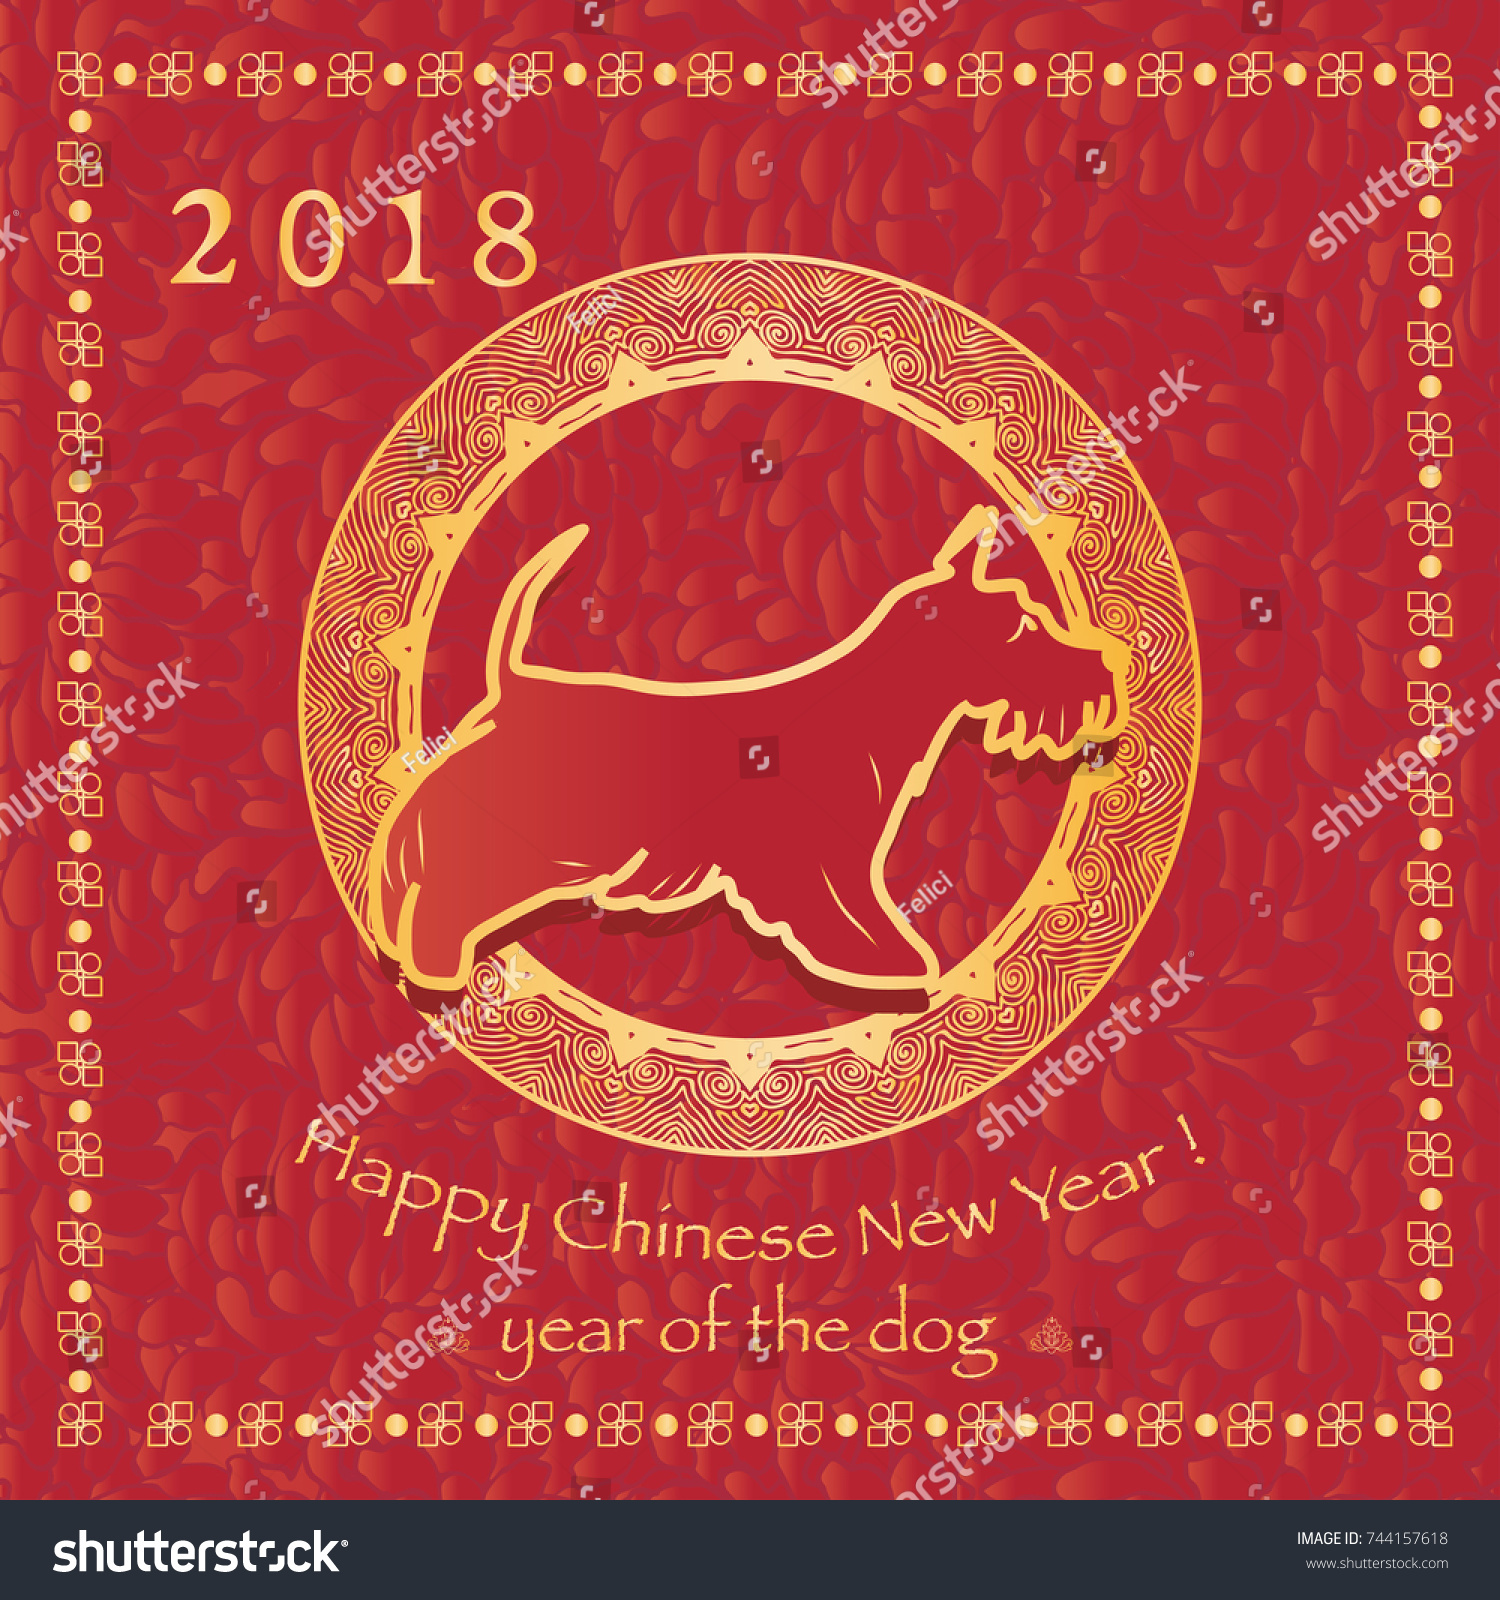 happy chinese new year 2018 card symbol of the year is a dog scottish